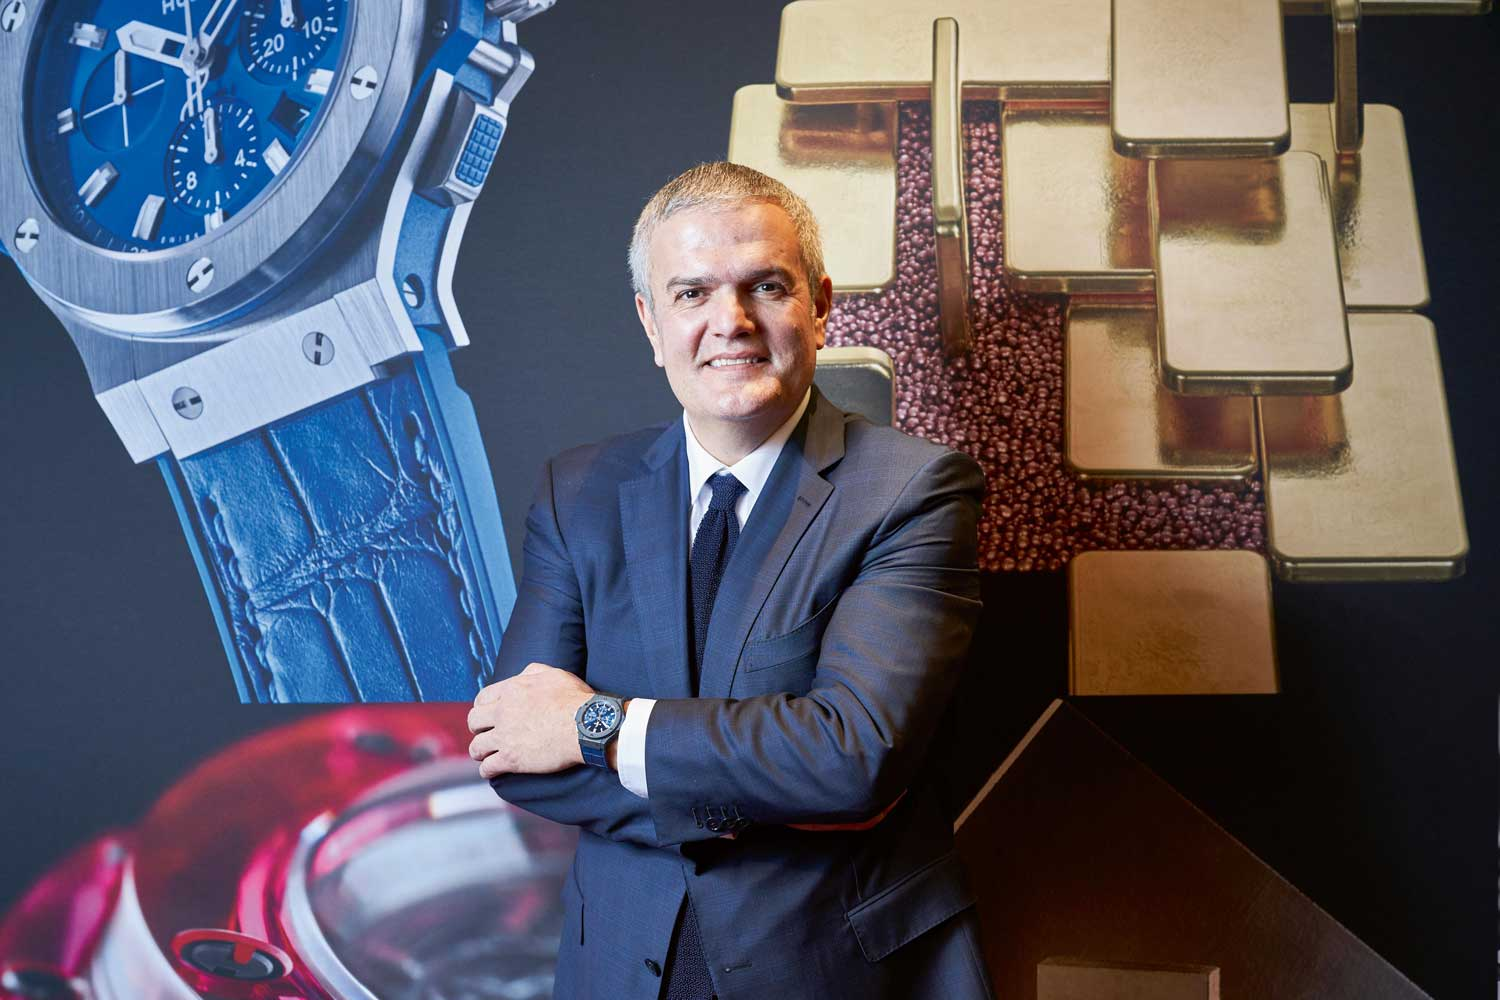 Ricardo Guadalupe, CEO of Hublot